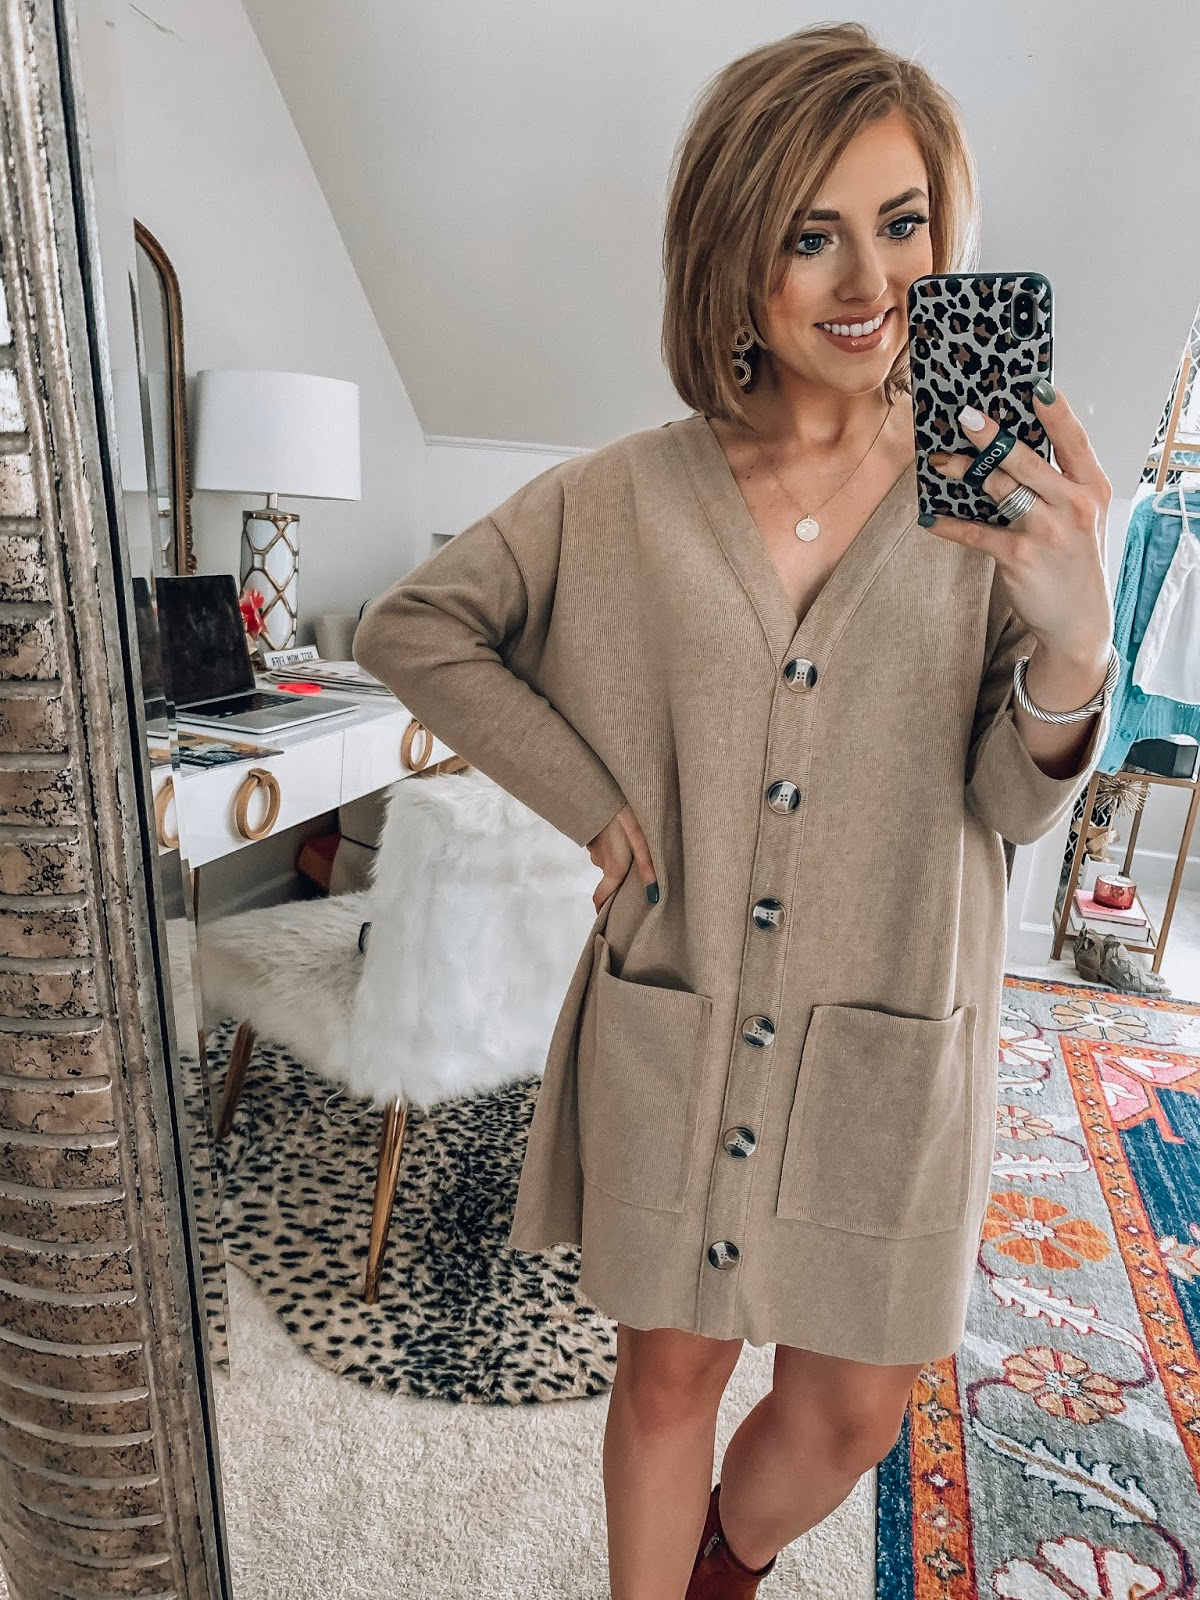 ASOS New Fall Arrivals - $45 Cardigan Dress - Something Delightful Blog #fallstyle #affordablefashion